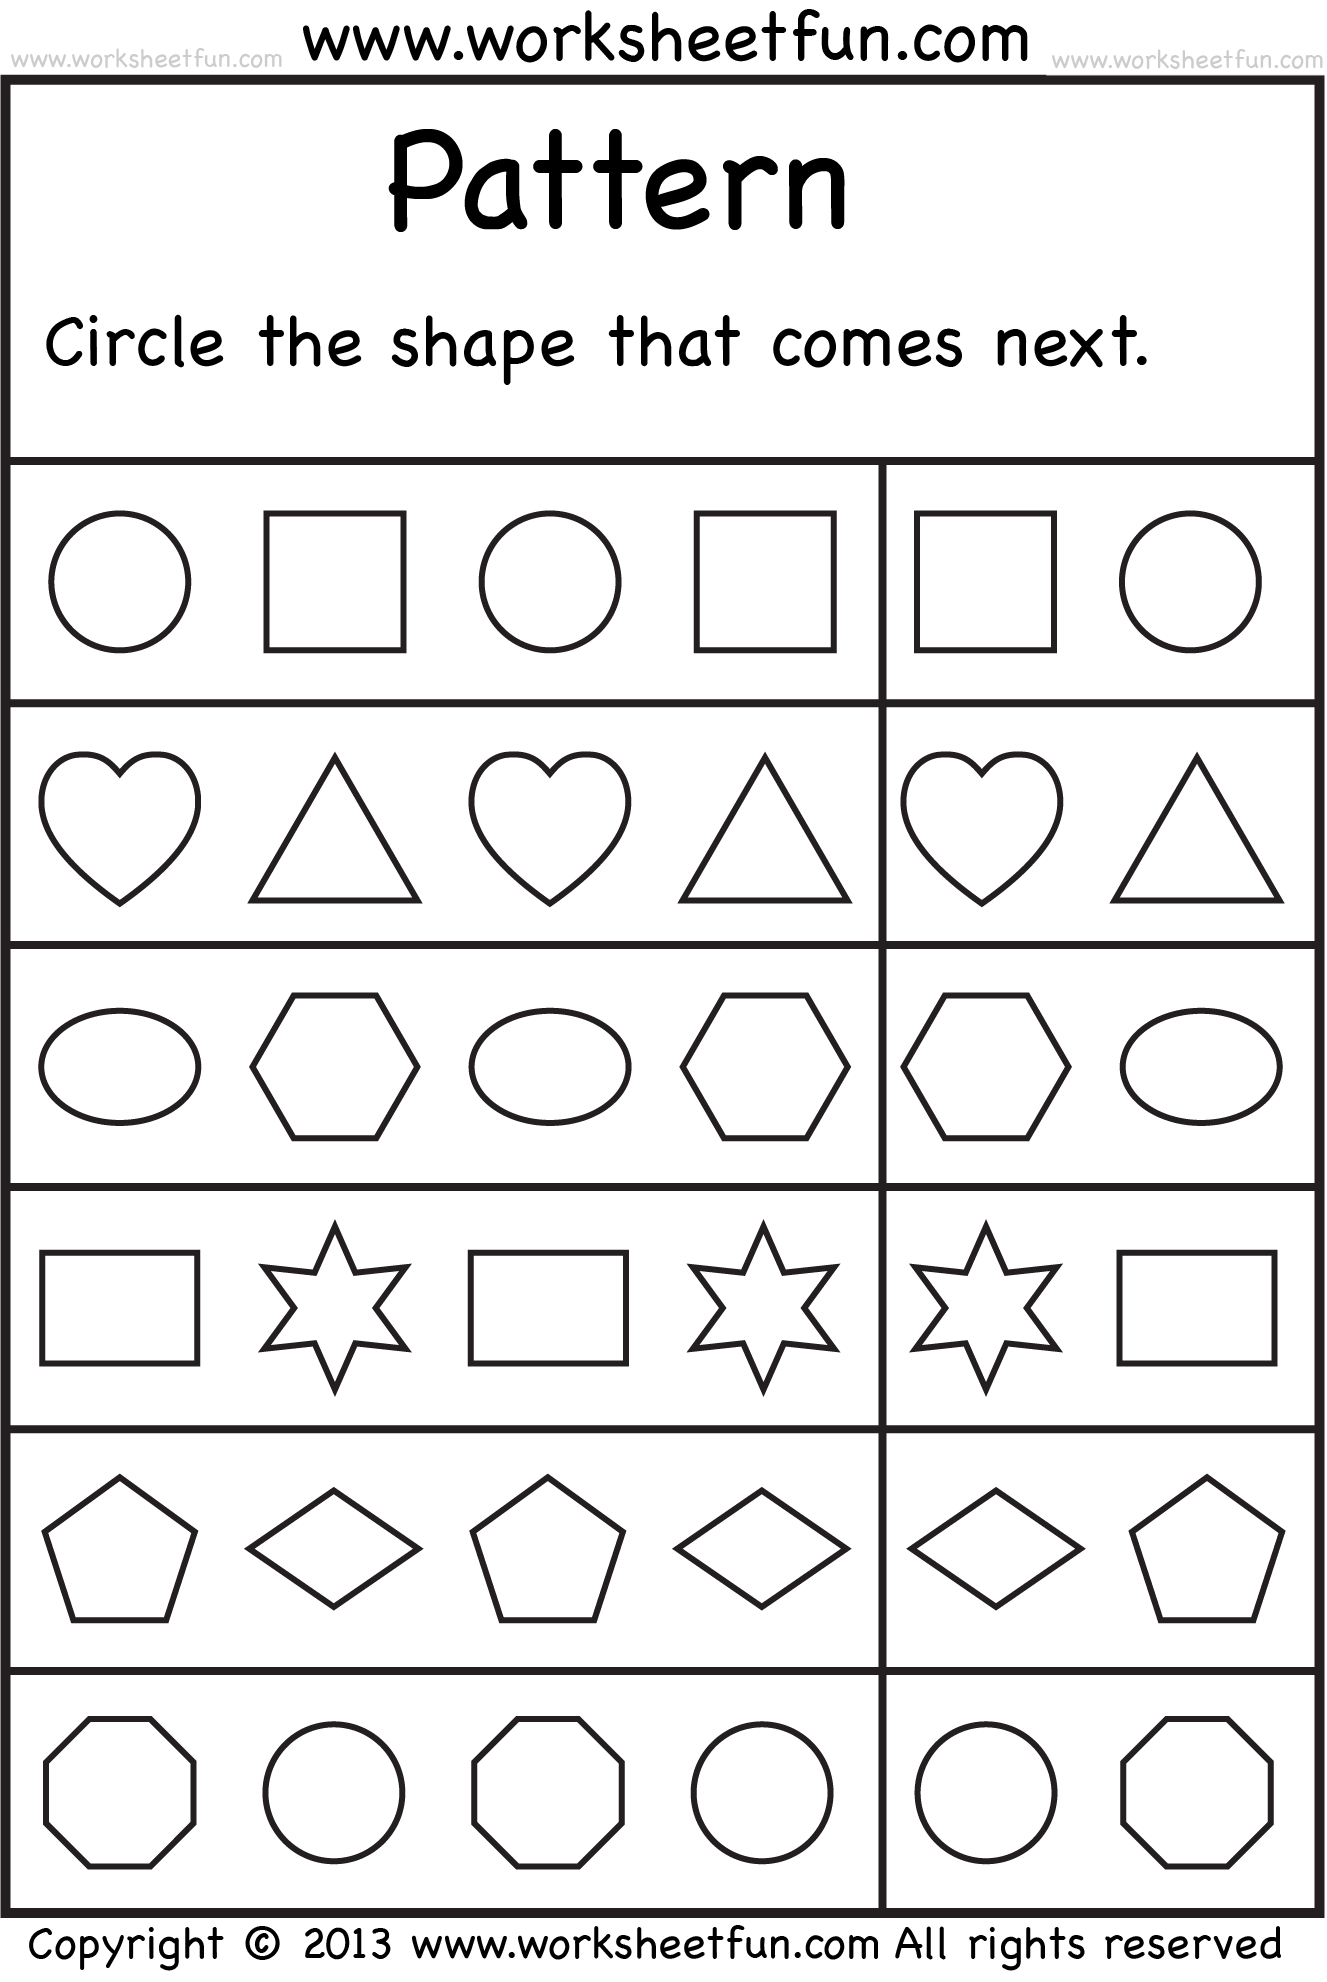 Weirdmailus  Marvellous  Images About School Worksheets On Pinterest  Number Words  With Gorgeous  Images About School Worksheets On Pinterest  Number Words Alphabet Worksheets And Free Printable Kindergarten Worksheets With Astonishing Multiplication Fact Fluency Worksheets Also Fourth Grade Math Word Problems Worksheets In Addition Counting Numbers Worksheets For Kindergarten And Tiger Rising Worksheets As Well As Math Worksheets For Th Grade Word Problems Additionally Phonics Worksheets Grade  From Pinterestcom With Weirdmailus  Gorgeous  Images About School Worksheets On Pinterest  Number Words  With Astonishing  Images About School Worksheets On Pinterest  Number Words Alphabet Worksheets And Free Printable Kindergarten Worksheets And Marvellous Multiplication Fact Fluency Worksheets Also Fourth Grade Math Word Problems Worksheets In Addition Counting Numbers Worksheets For Kindergarten From Pinterestcom